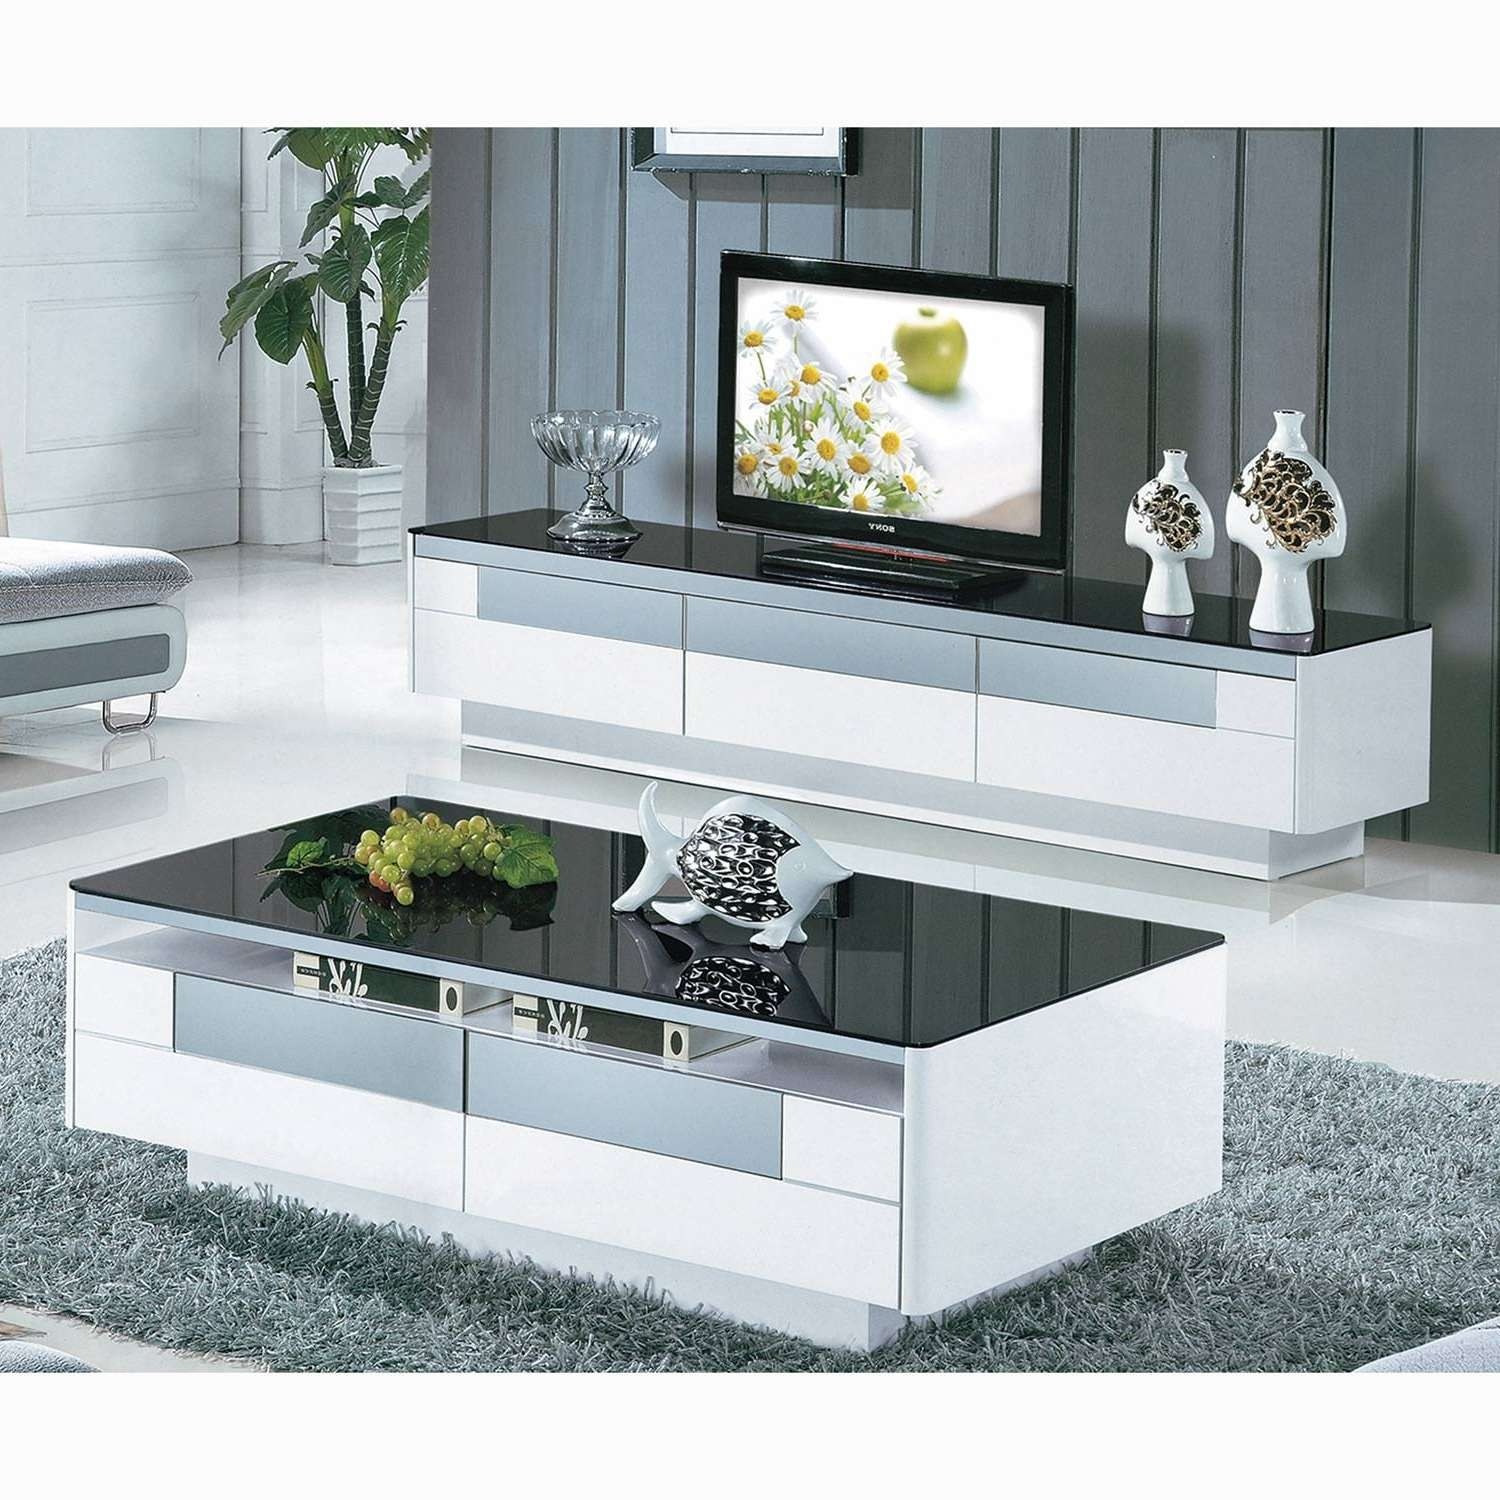 Coffee Tables : Best Tv Stand And Coffee Table Set Designs Colors Regarding Newest Tv Stand Coffee Table Sets (View 5 of 20)